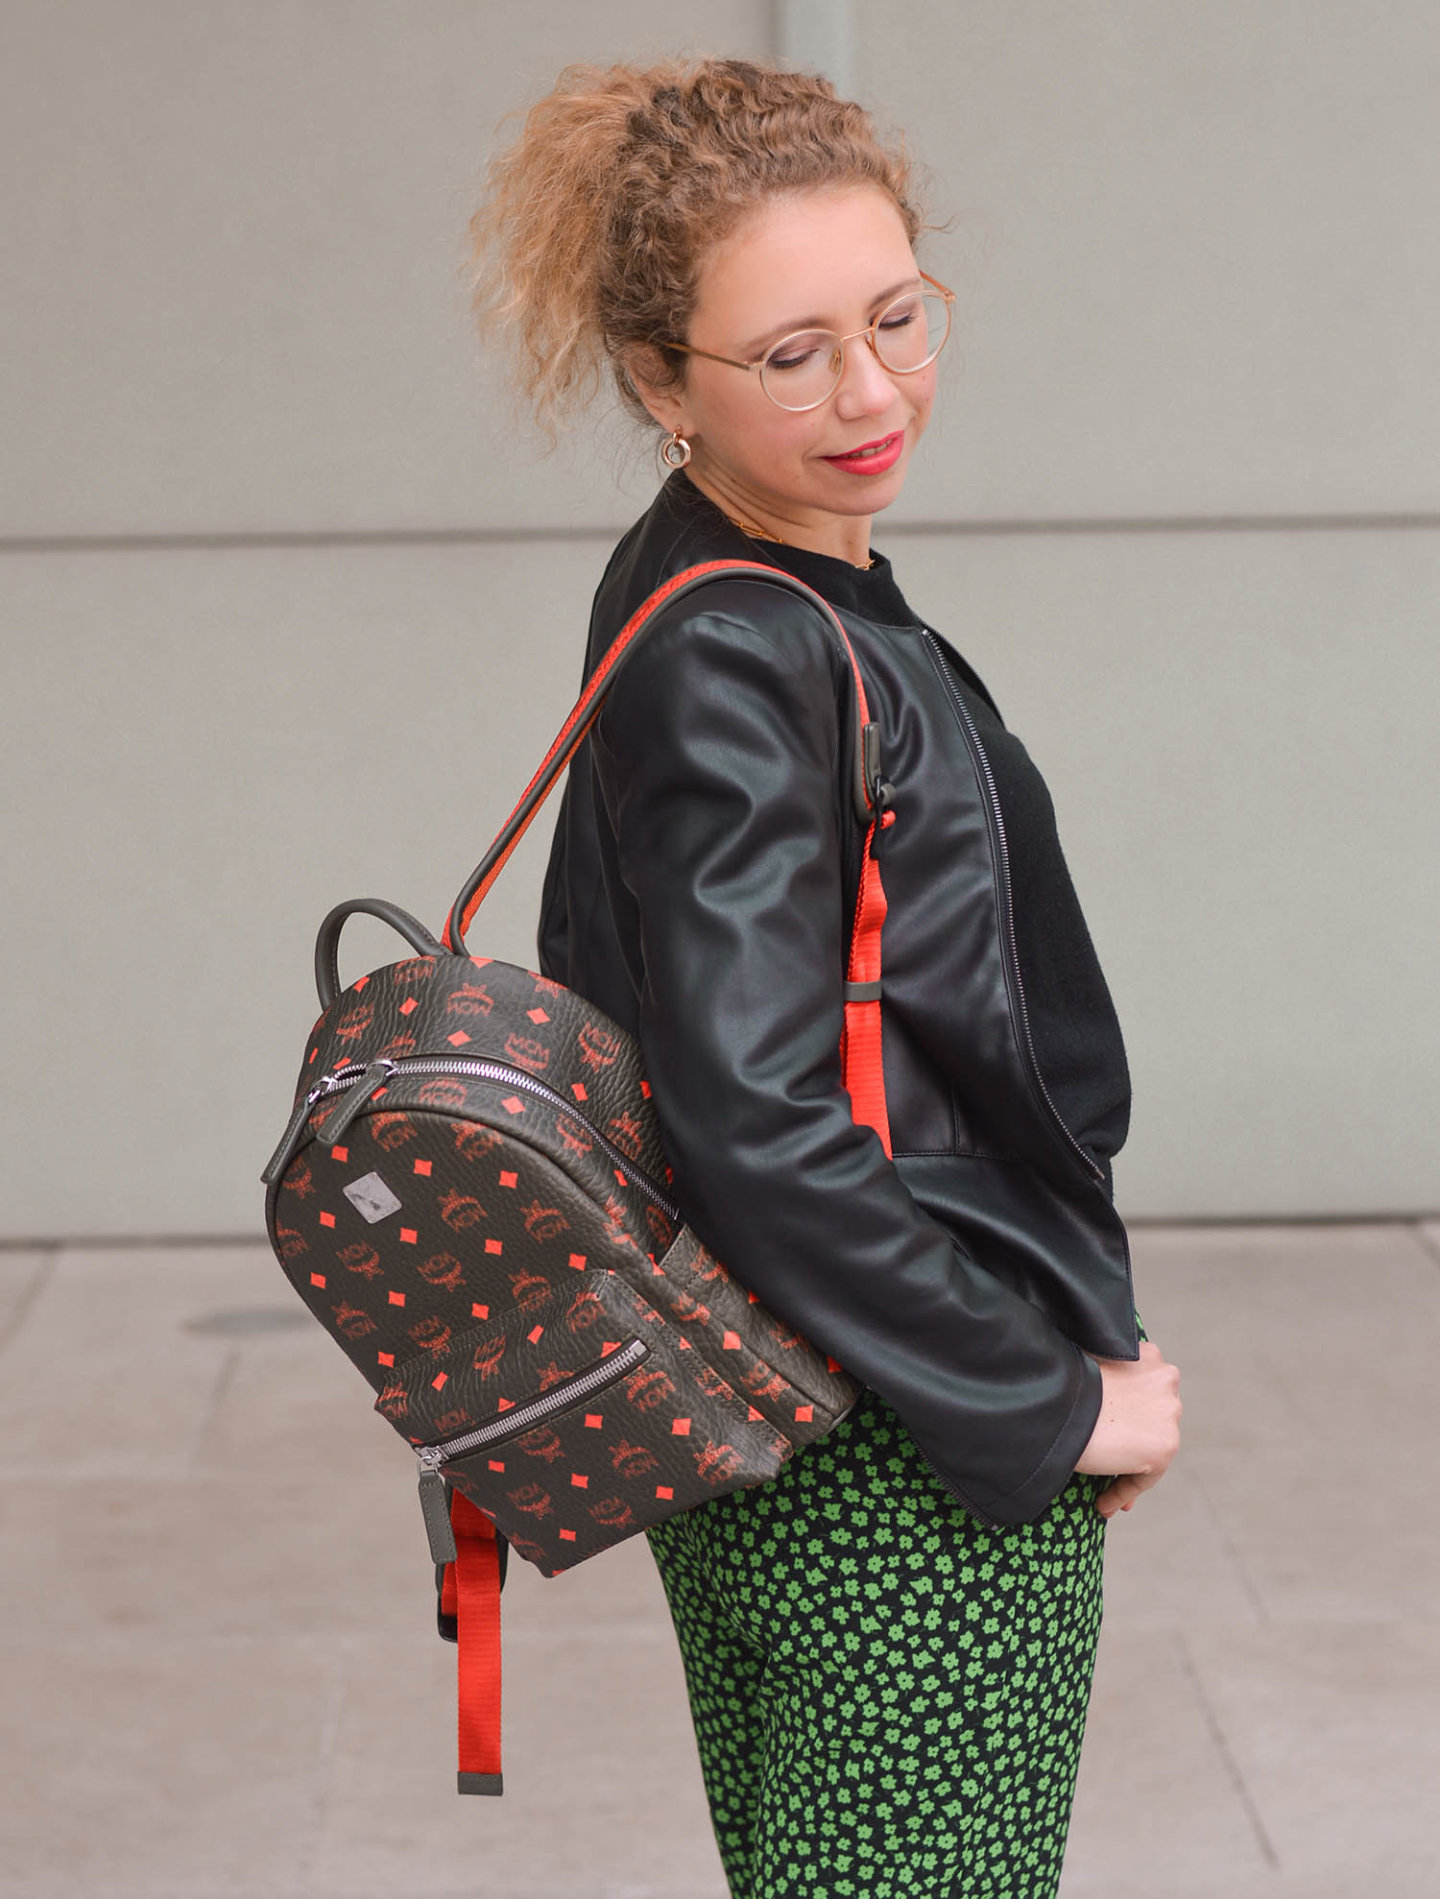 mcm rucksack und mustermix outfit